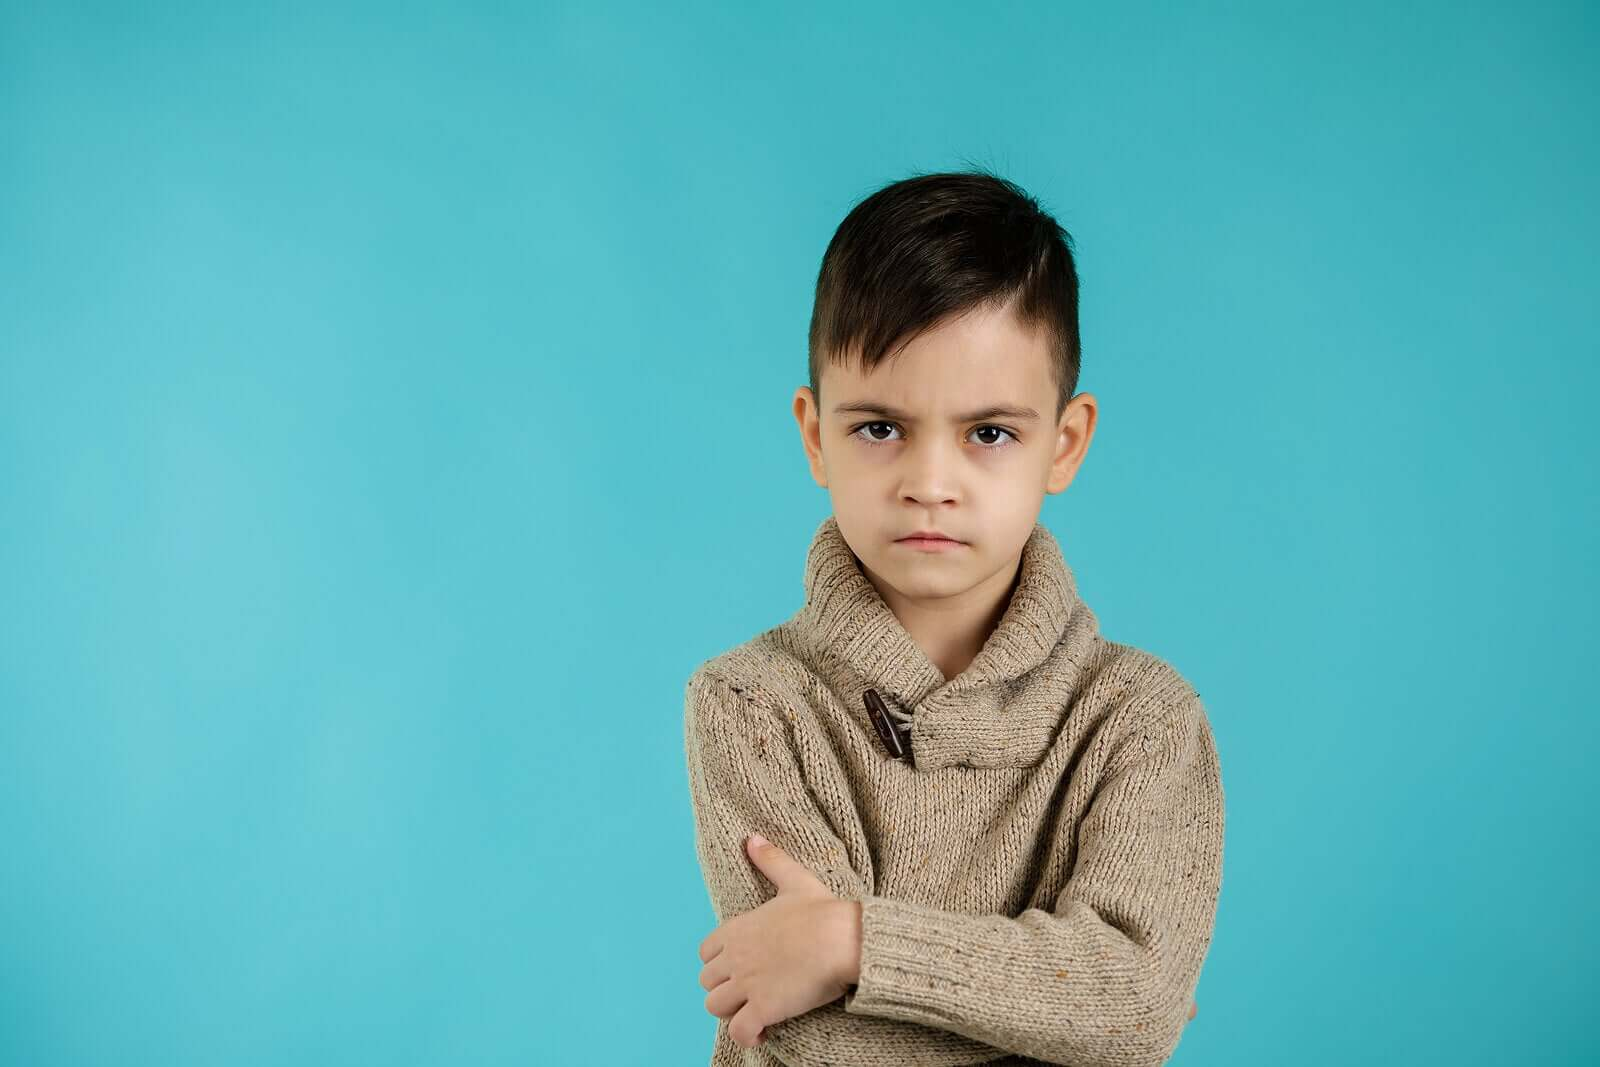 A small child crossing his arms and looking angry.